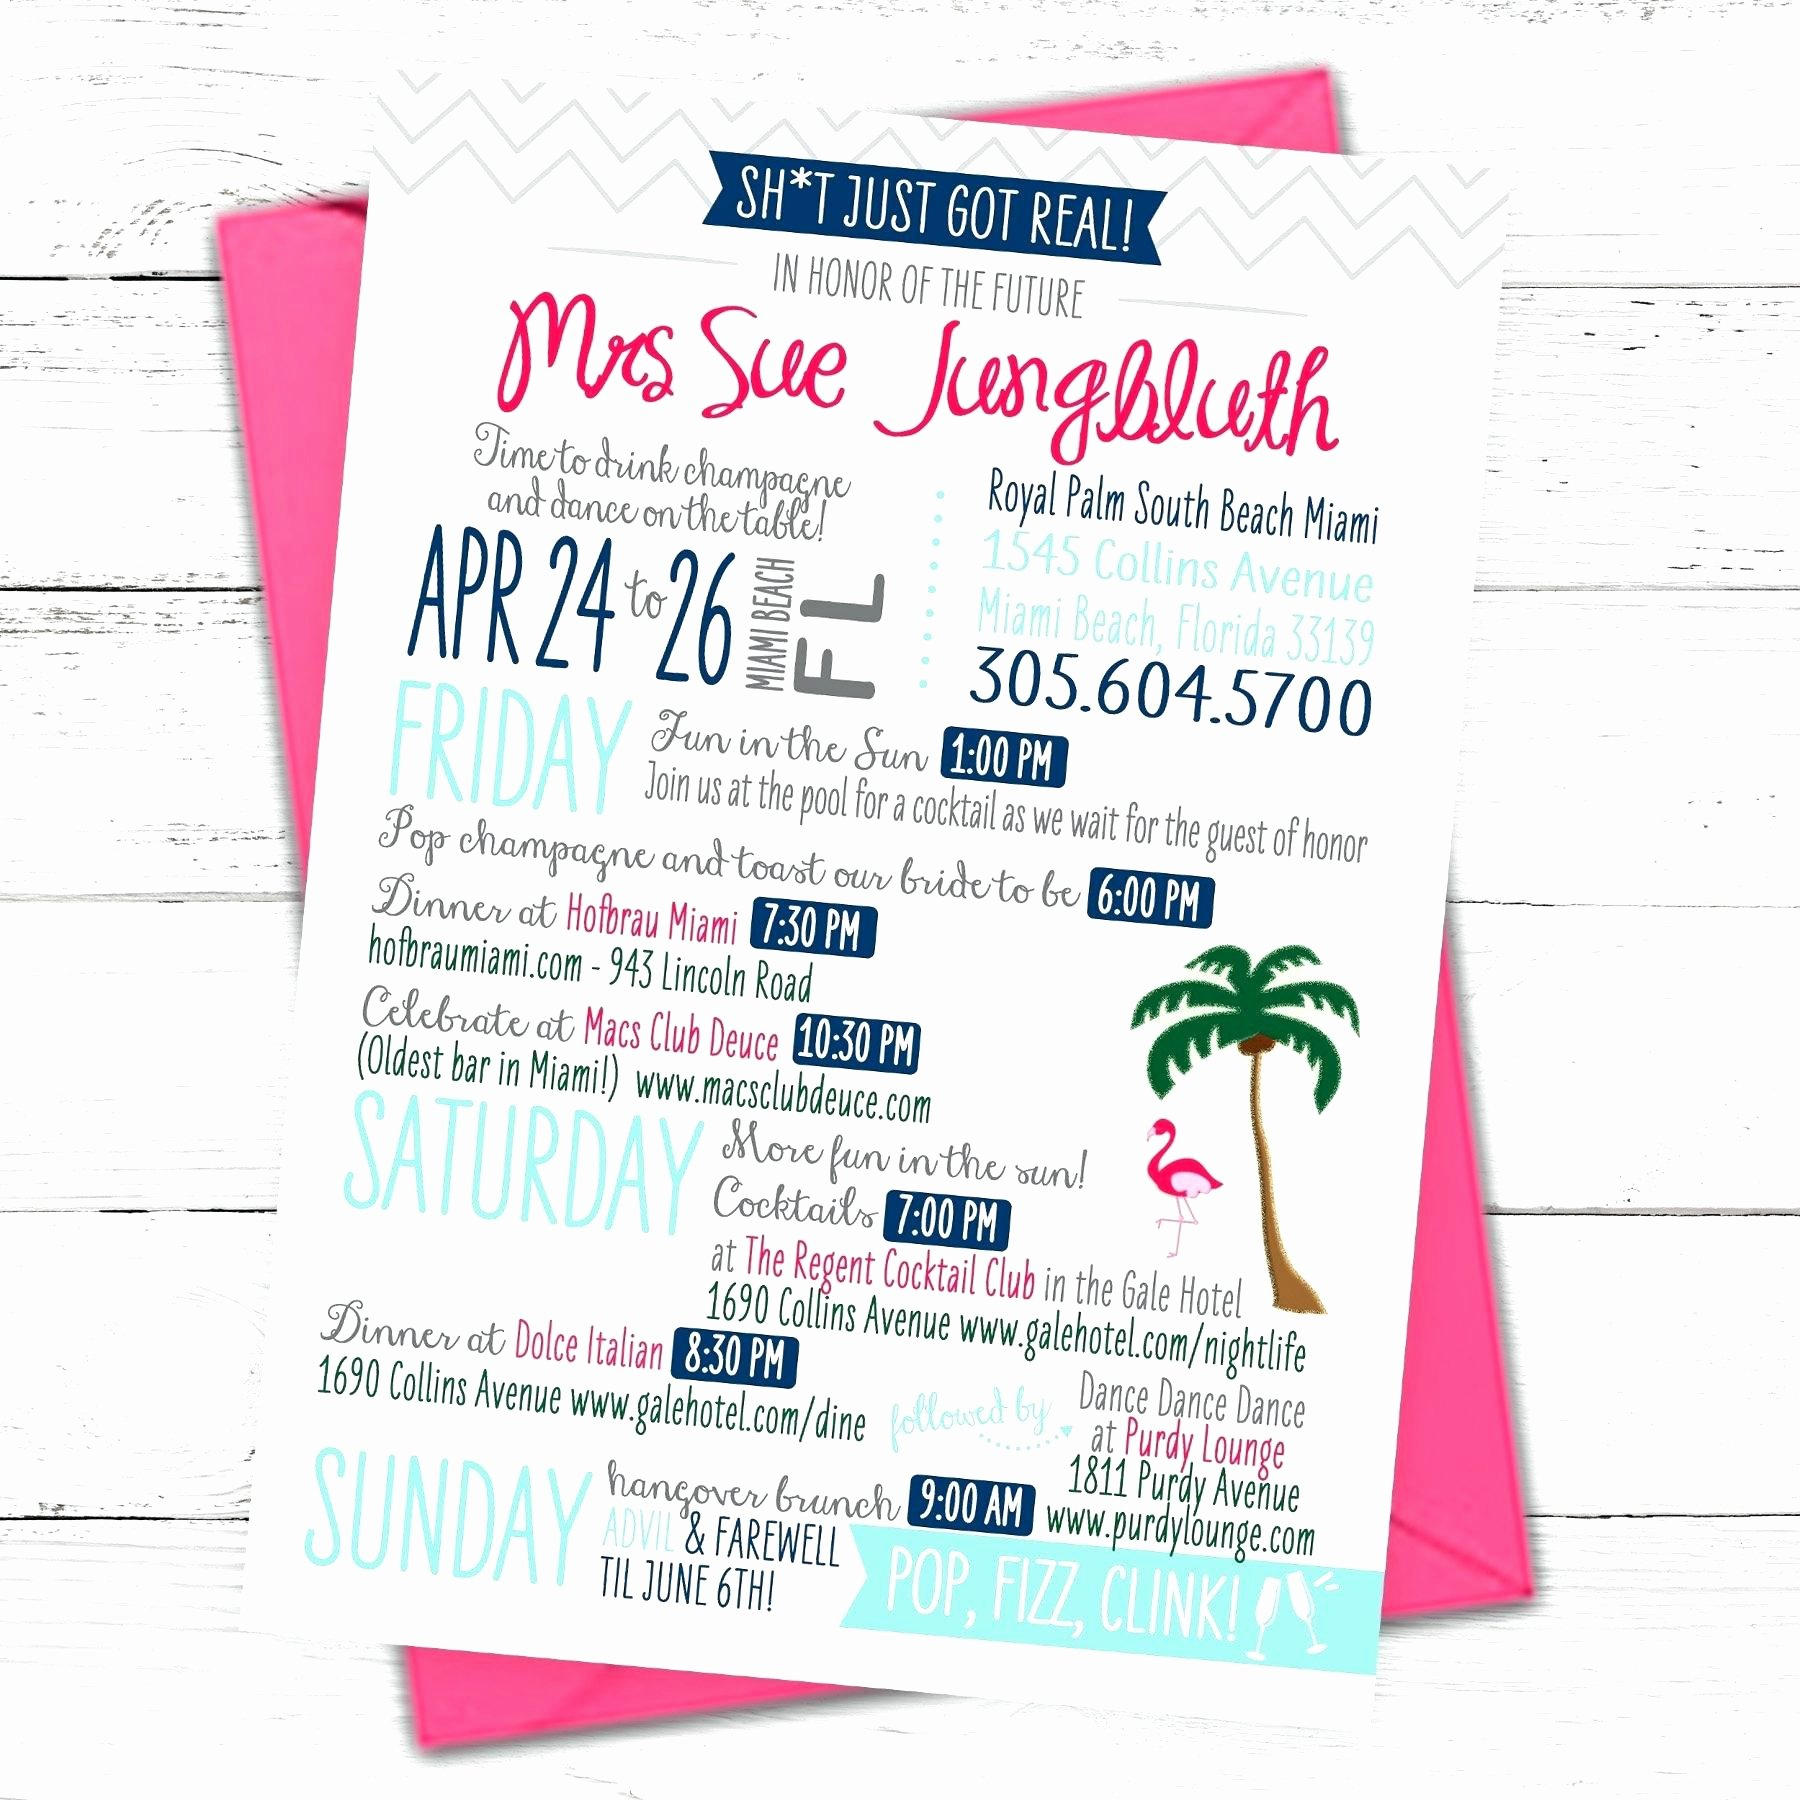 Bachelorette Party Itinerary Template Fresh Bachelorette Party Itinerary Template Templates Station